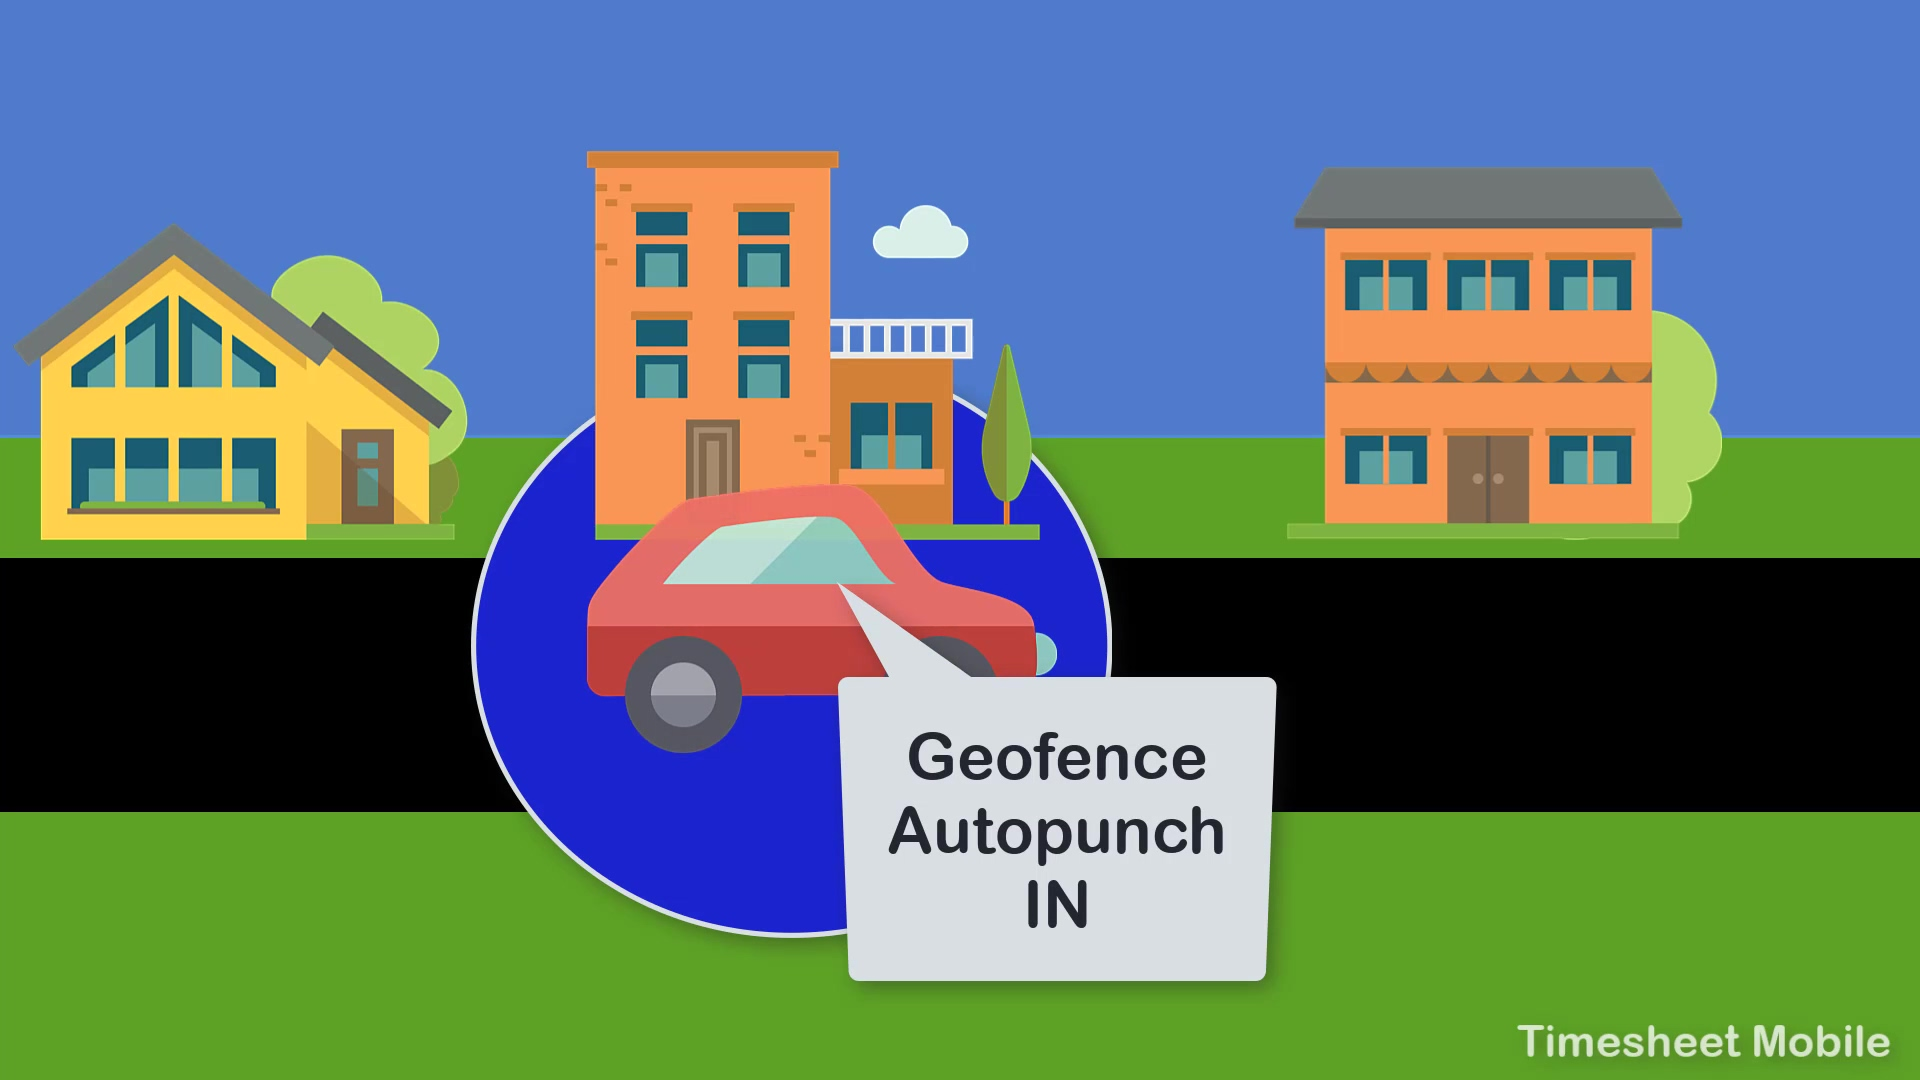 geofence_autopunch